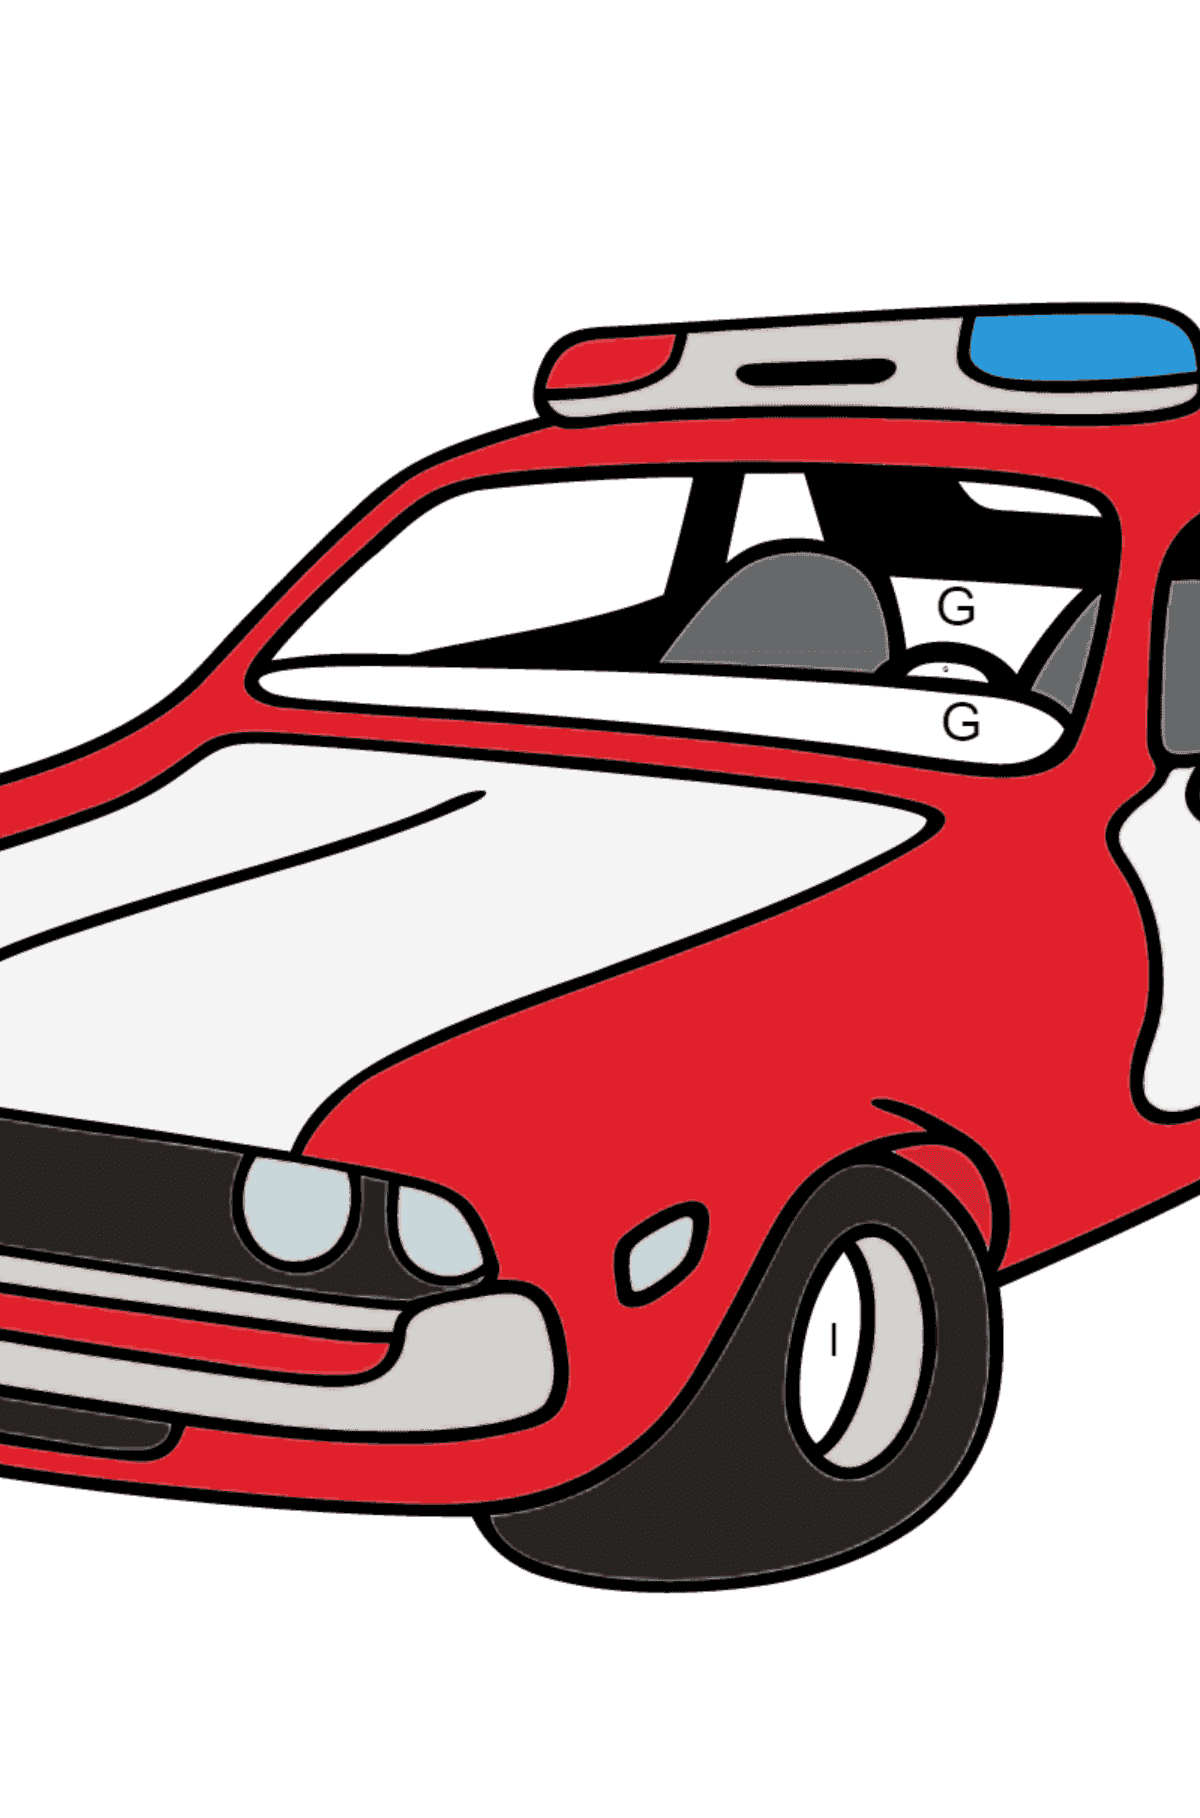 Coloring Page - A Red and White Police Car for Kids  - Color by Letters